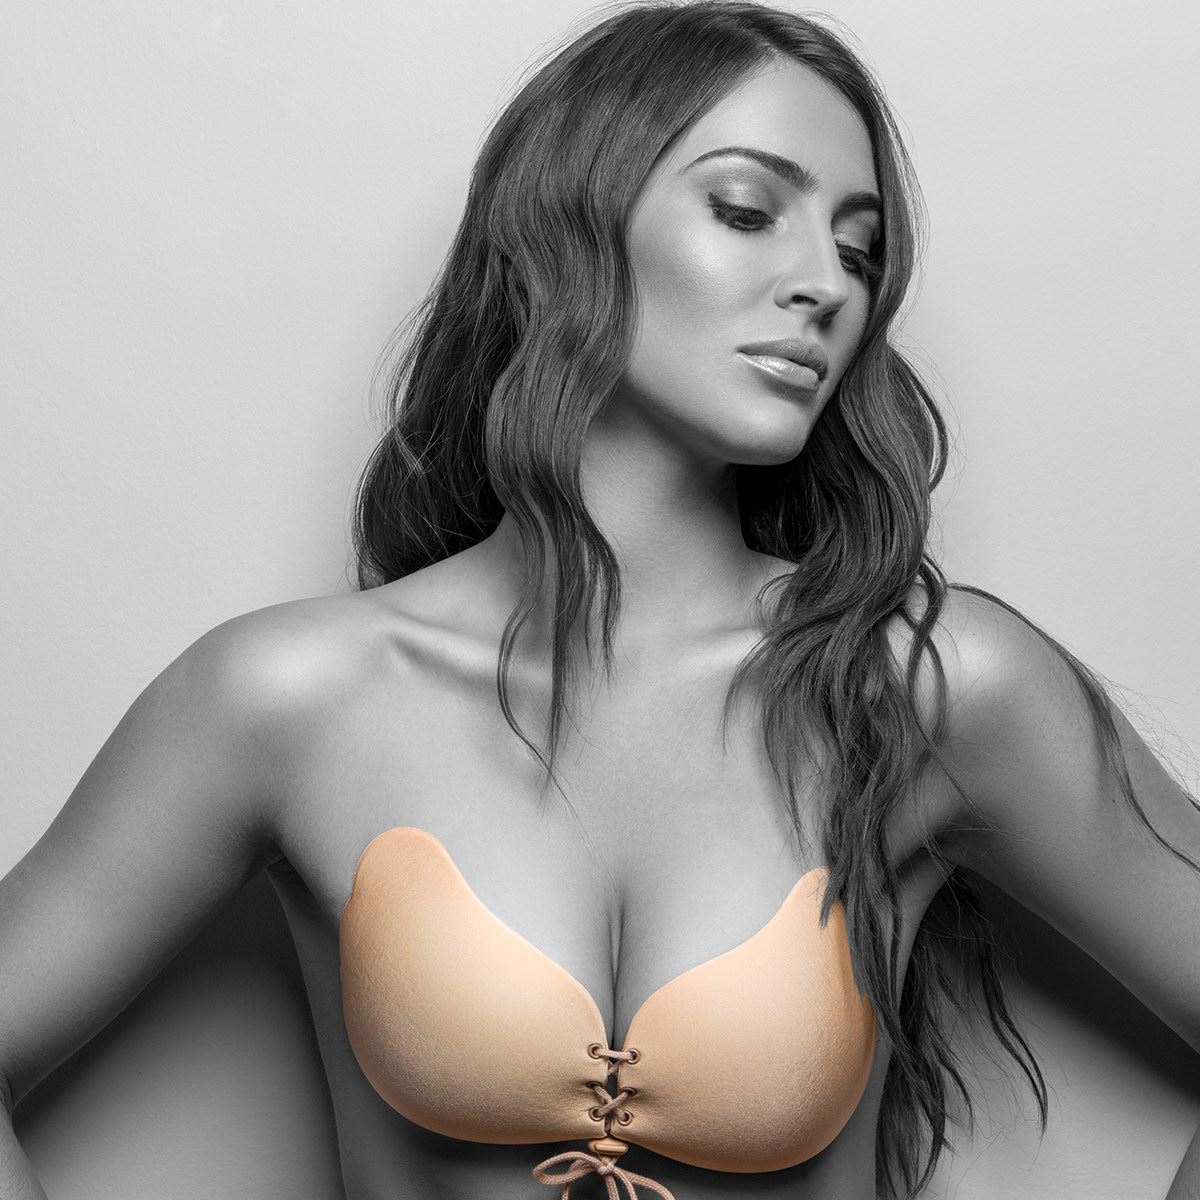 JML Star Bra Backless Strapless Stick-on Gel Bra With Lace Cleavage Control